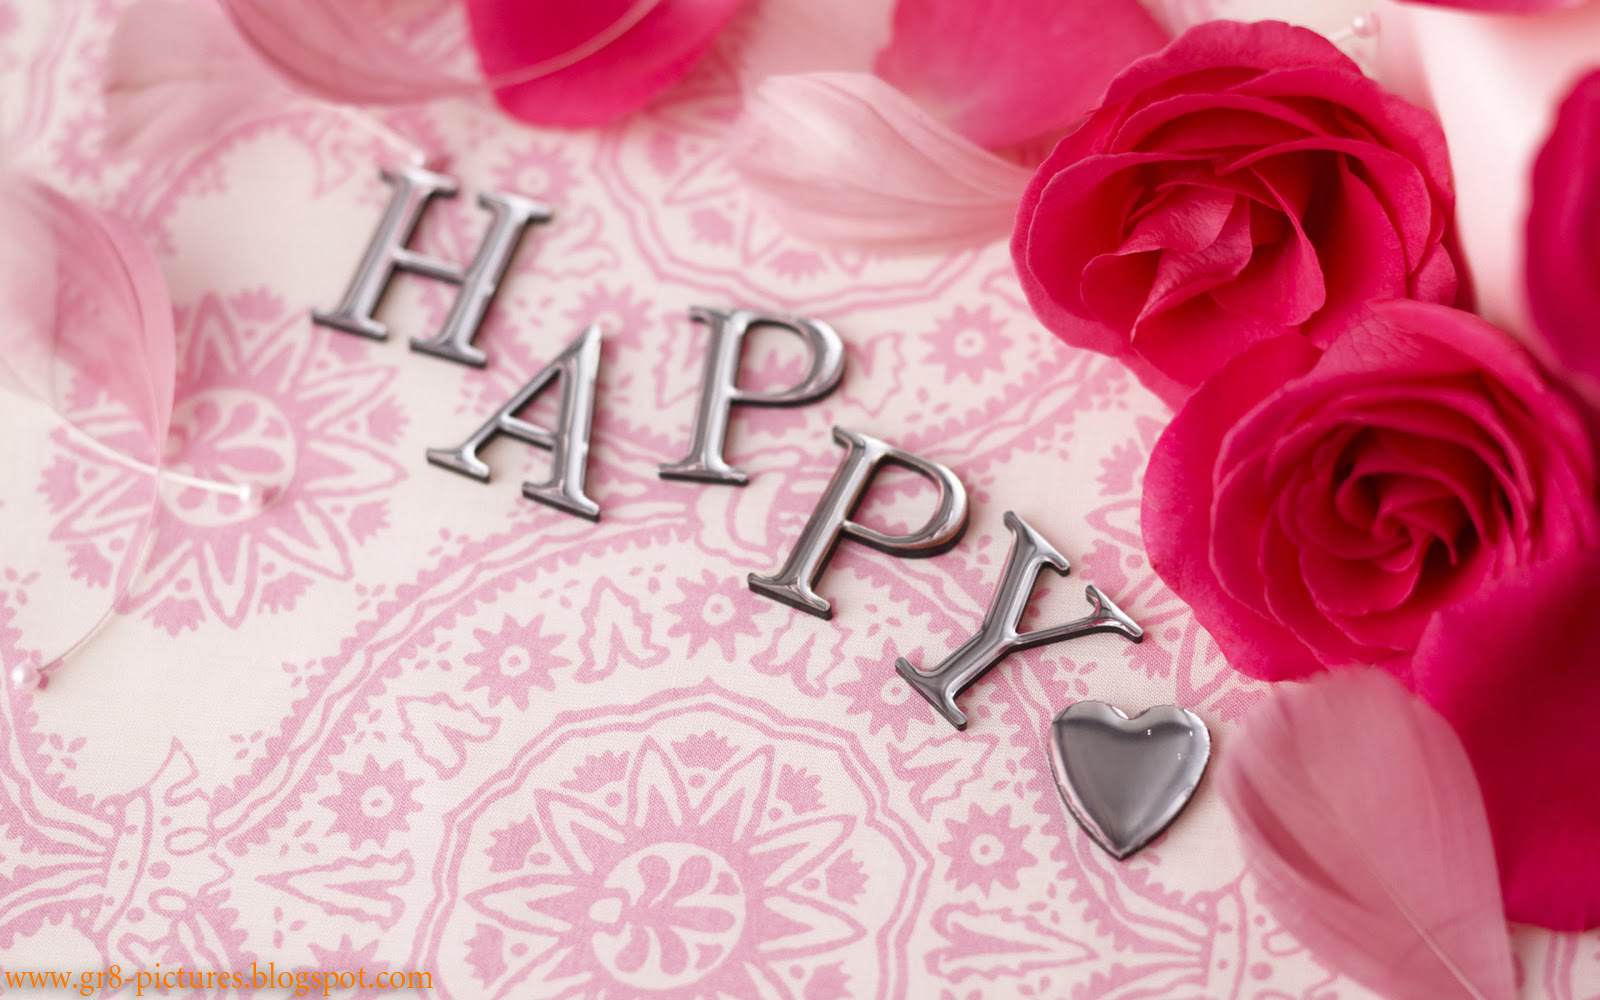 Happy birthday wallpaper with pink roses wallpaper 1600x1000